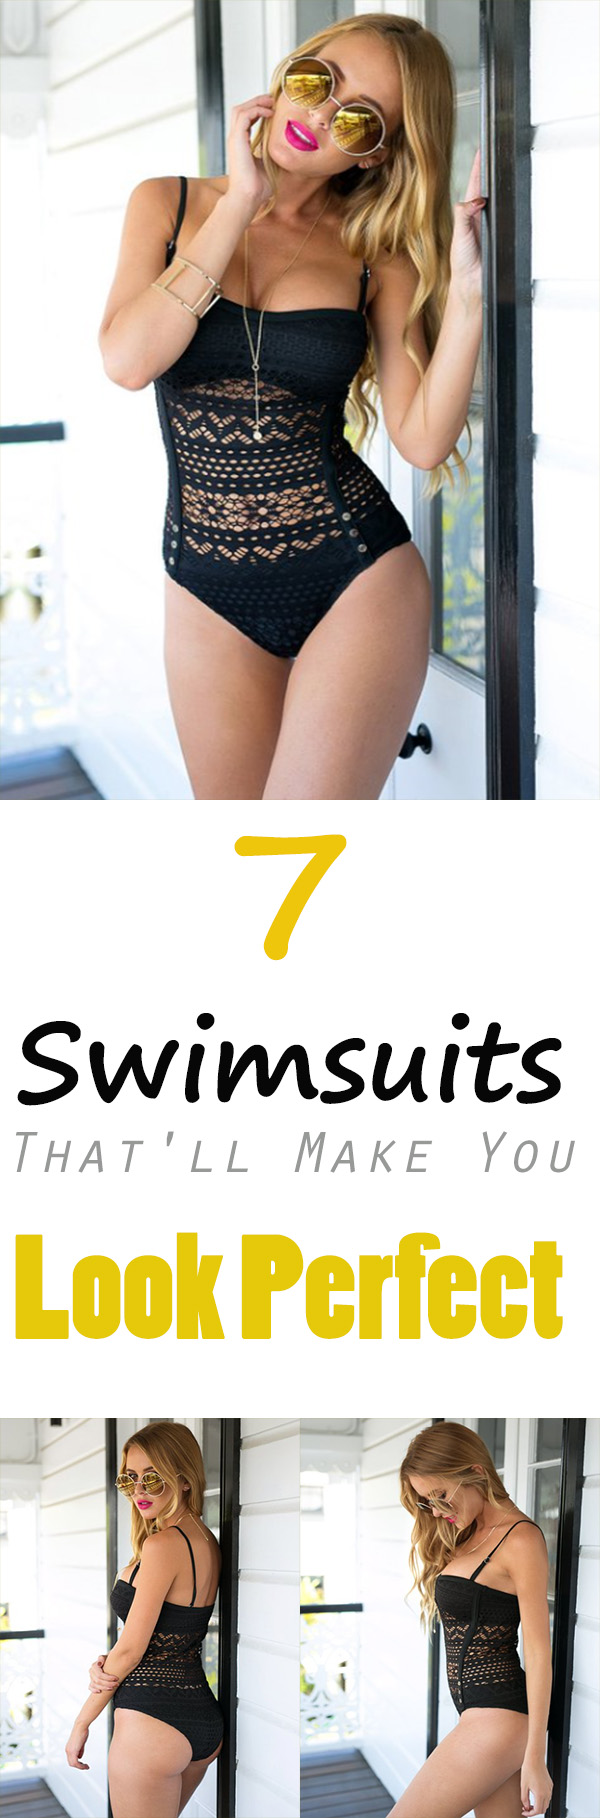 7 Swimsuits Thatll Make You Look Perfect - 7 Swimsuits That'll Make You Look Perfect